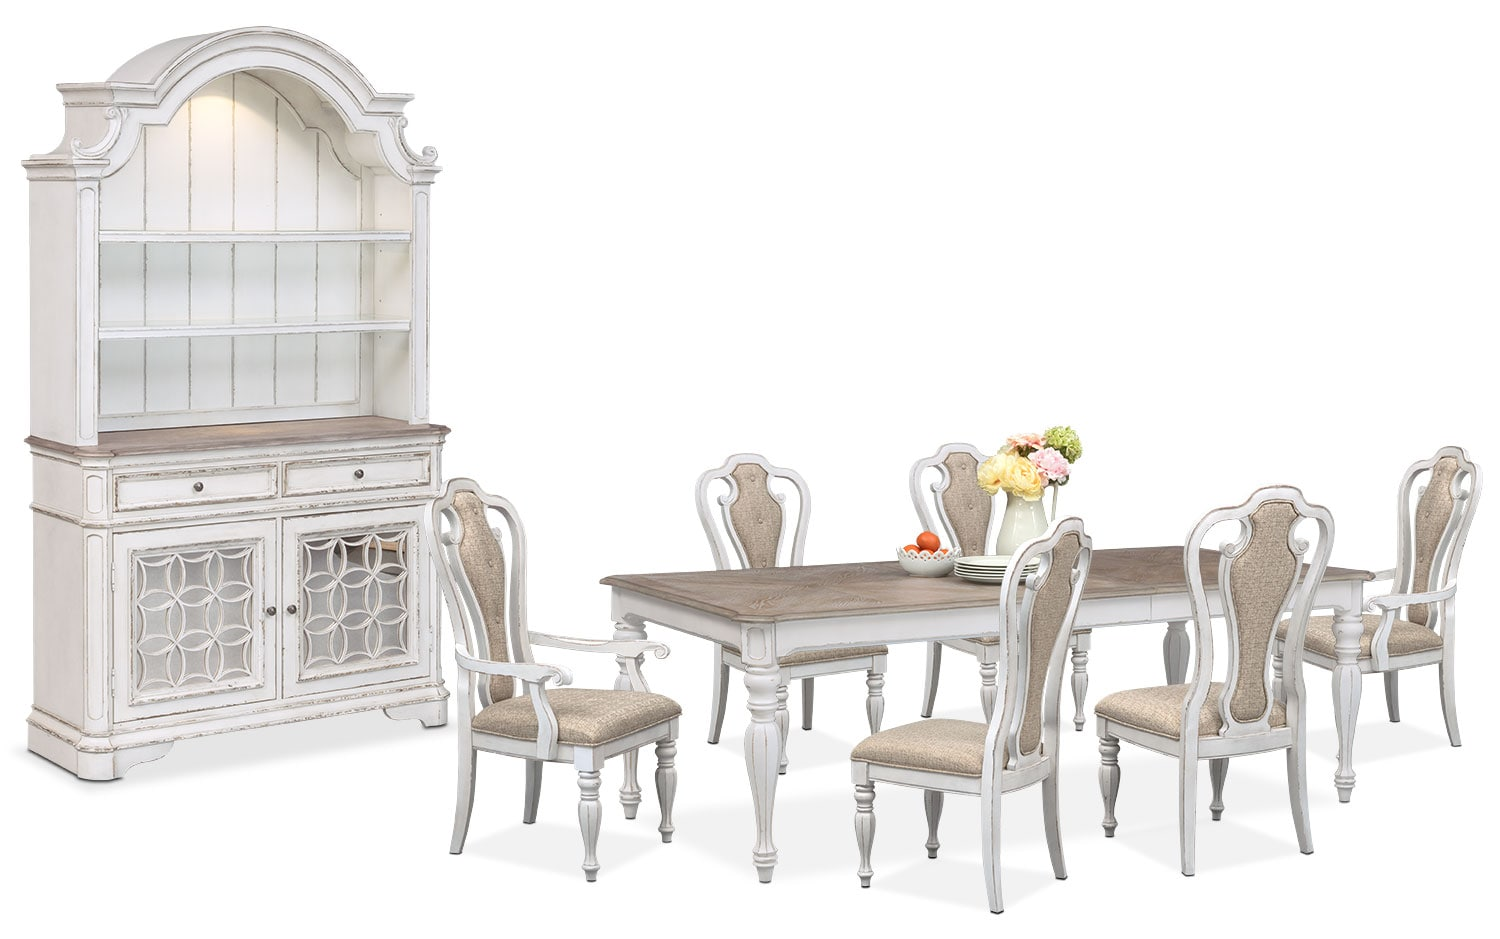 The Marcelle Dining Collection - Vintage White